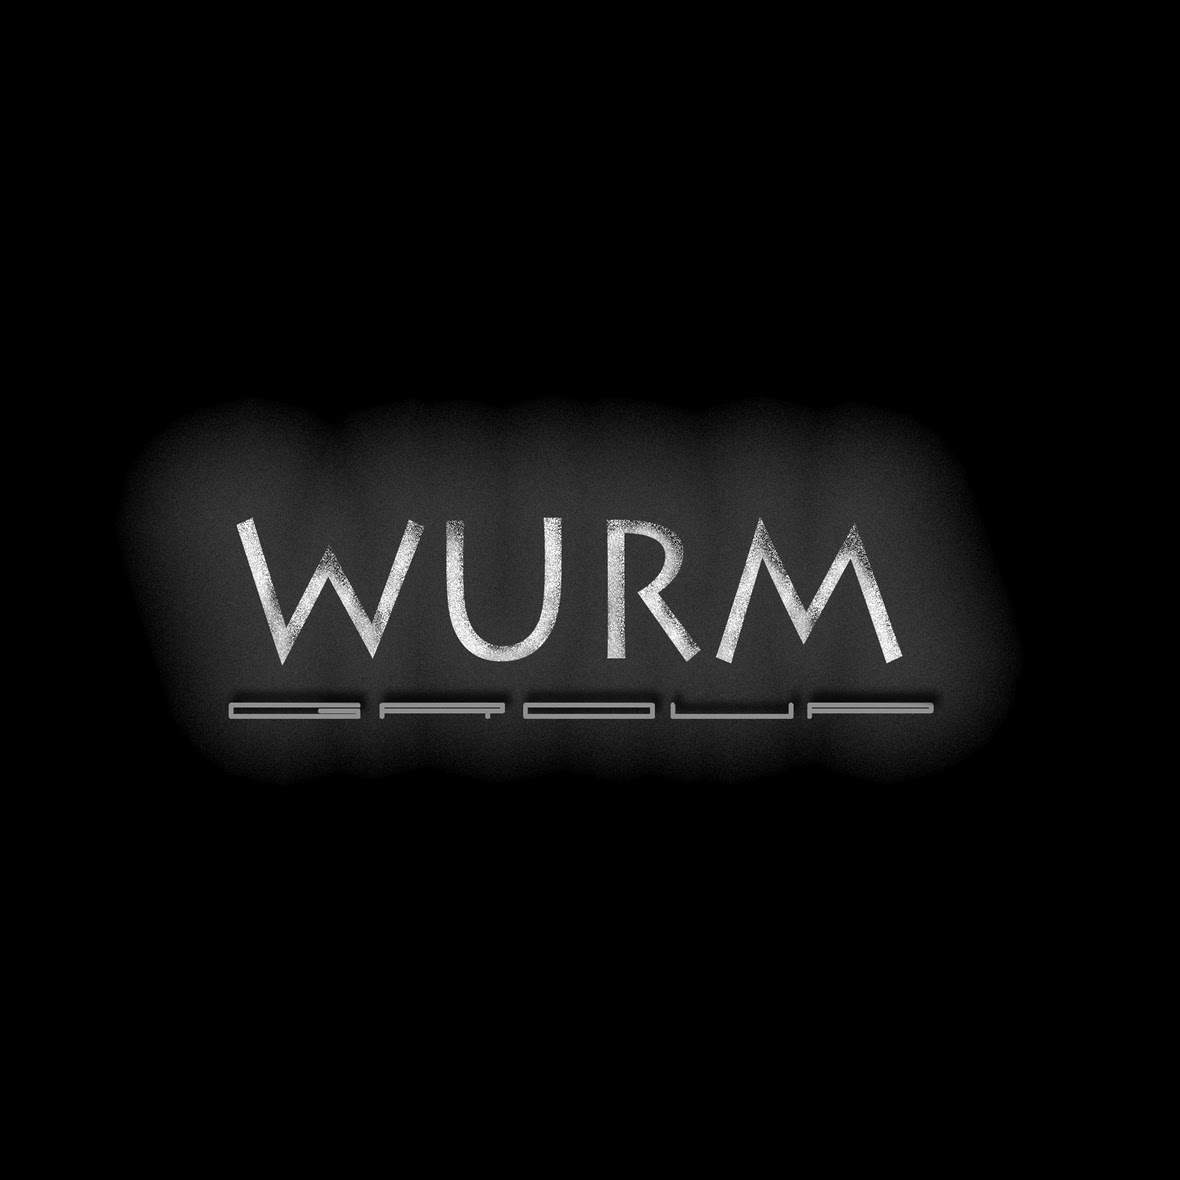 wurm-group-842